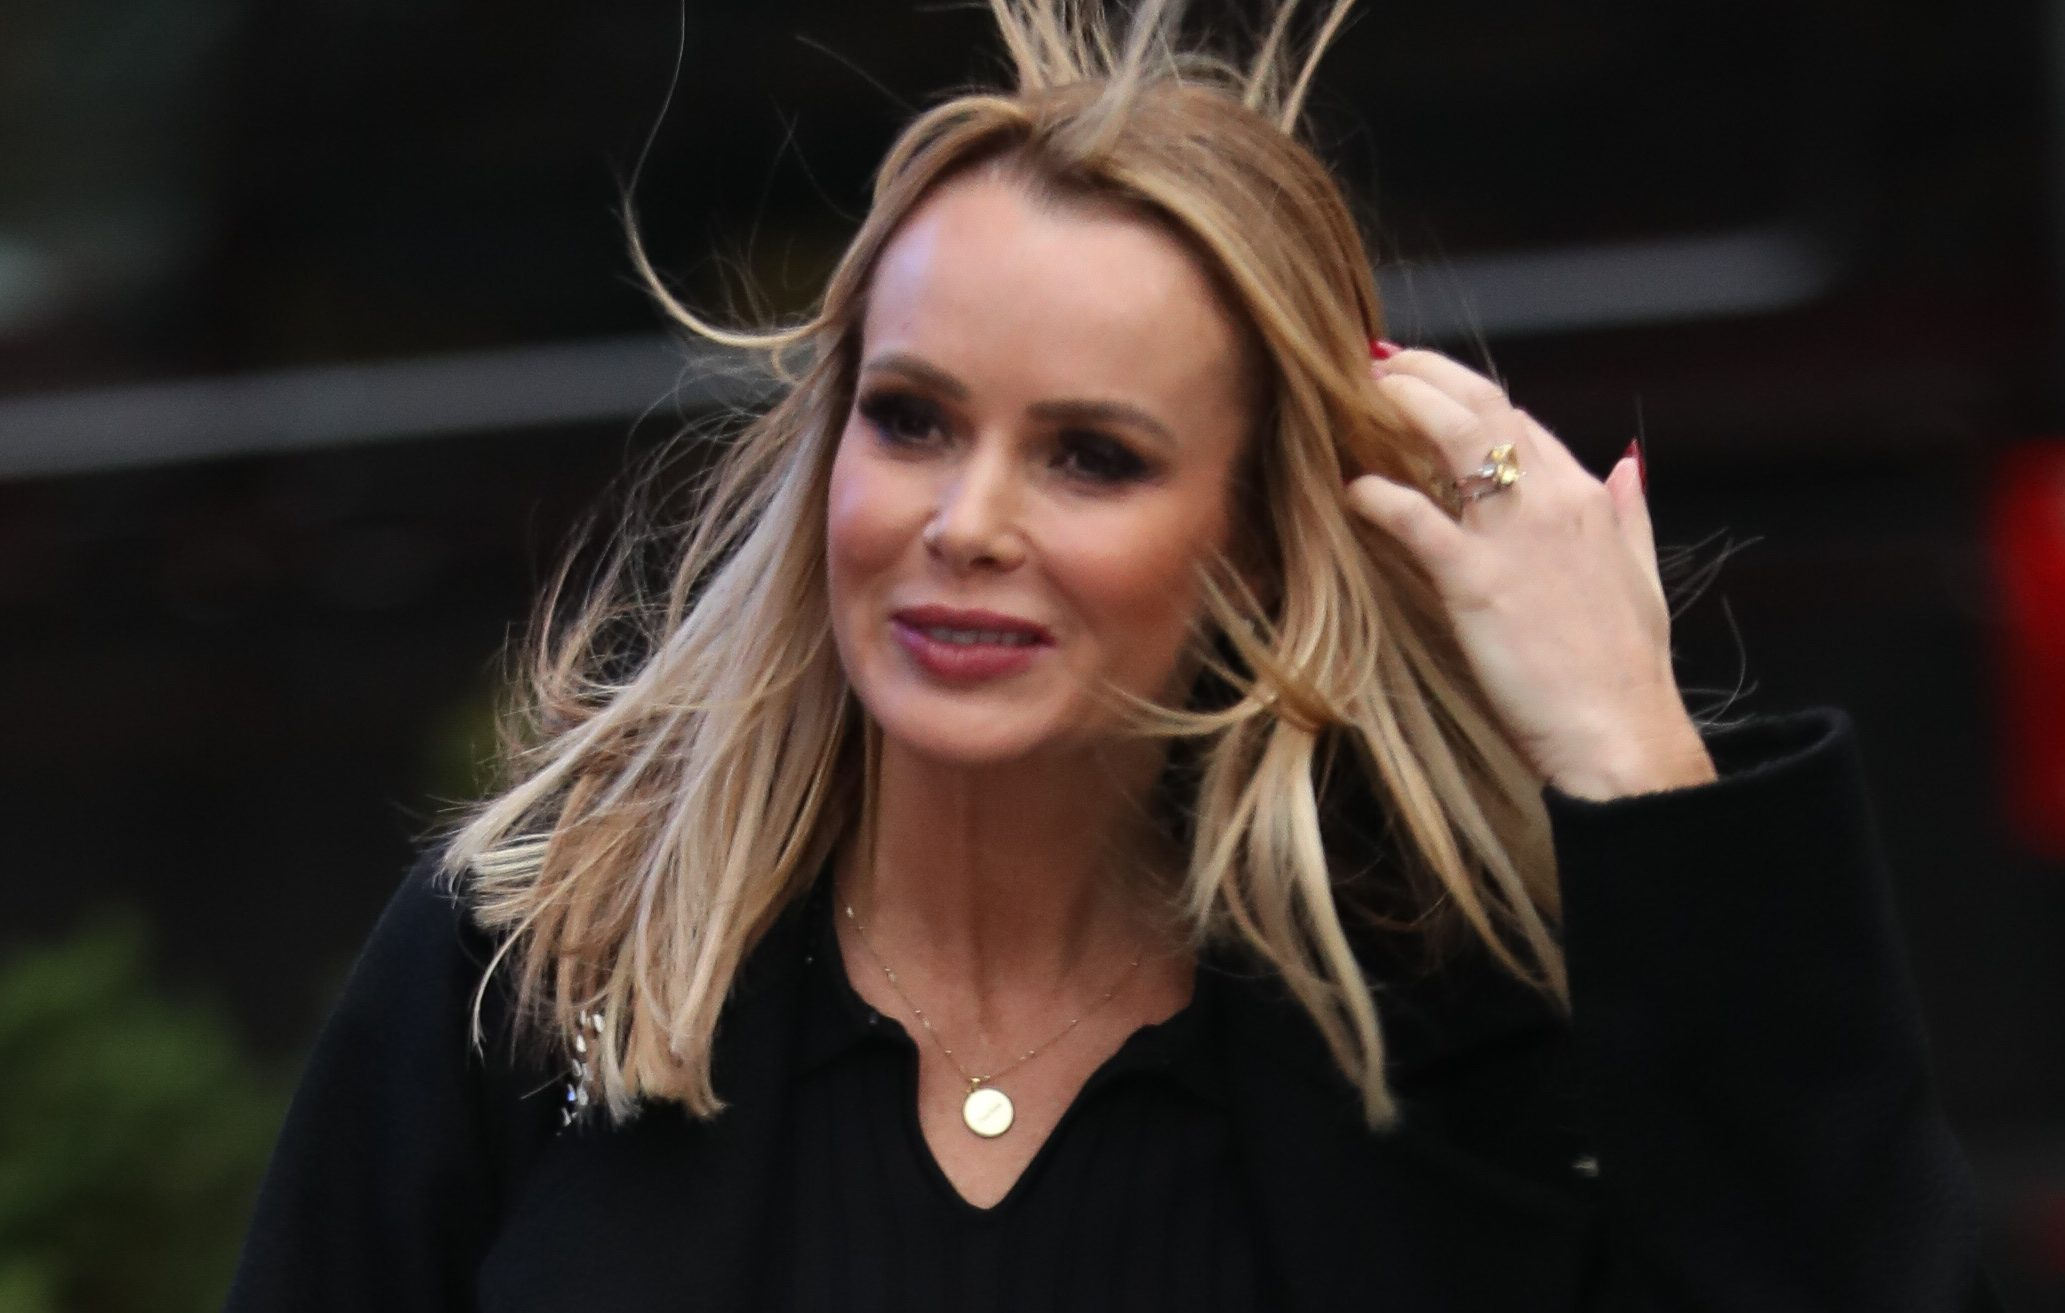 Amanda Holden reveals dramatic new blonde hairstyle at Britain's Got Talent auditions